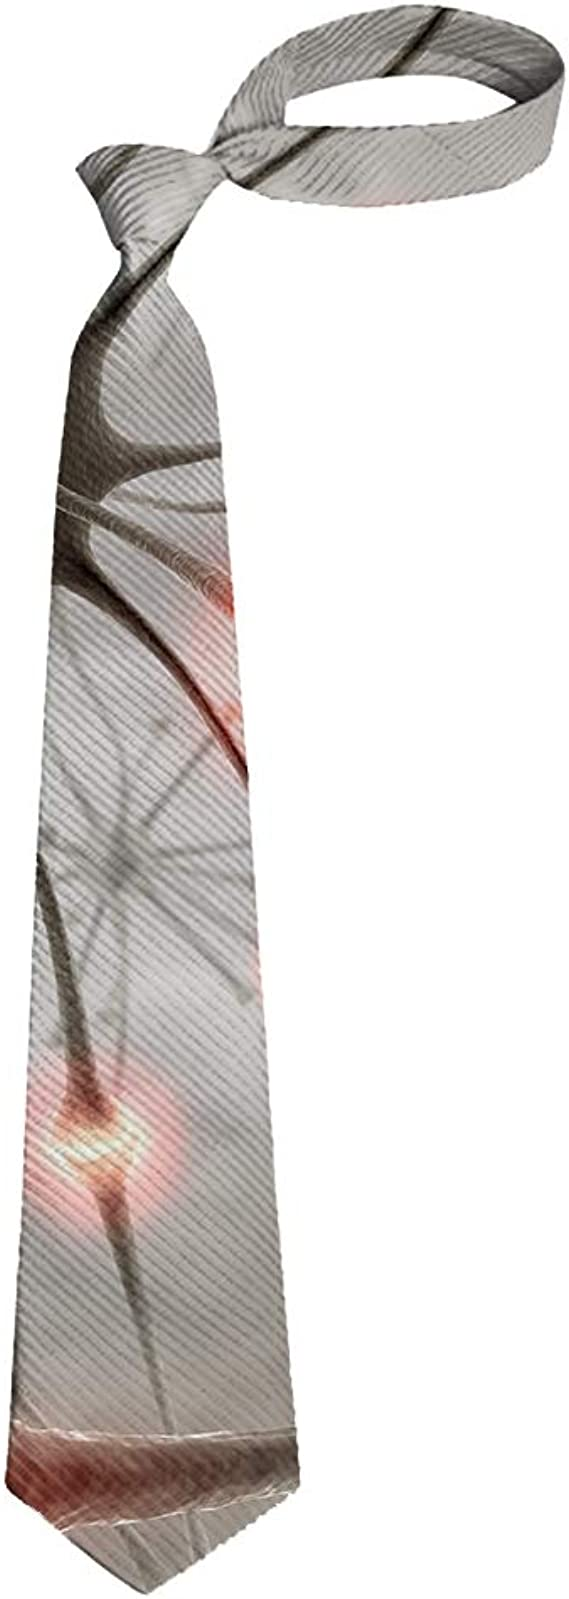 Men Date Gift Suit Necktie Formal Party Skinny Tie for Wedding